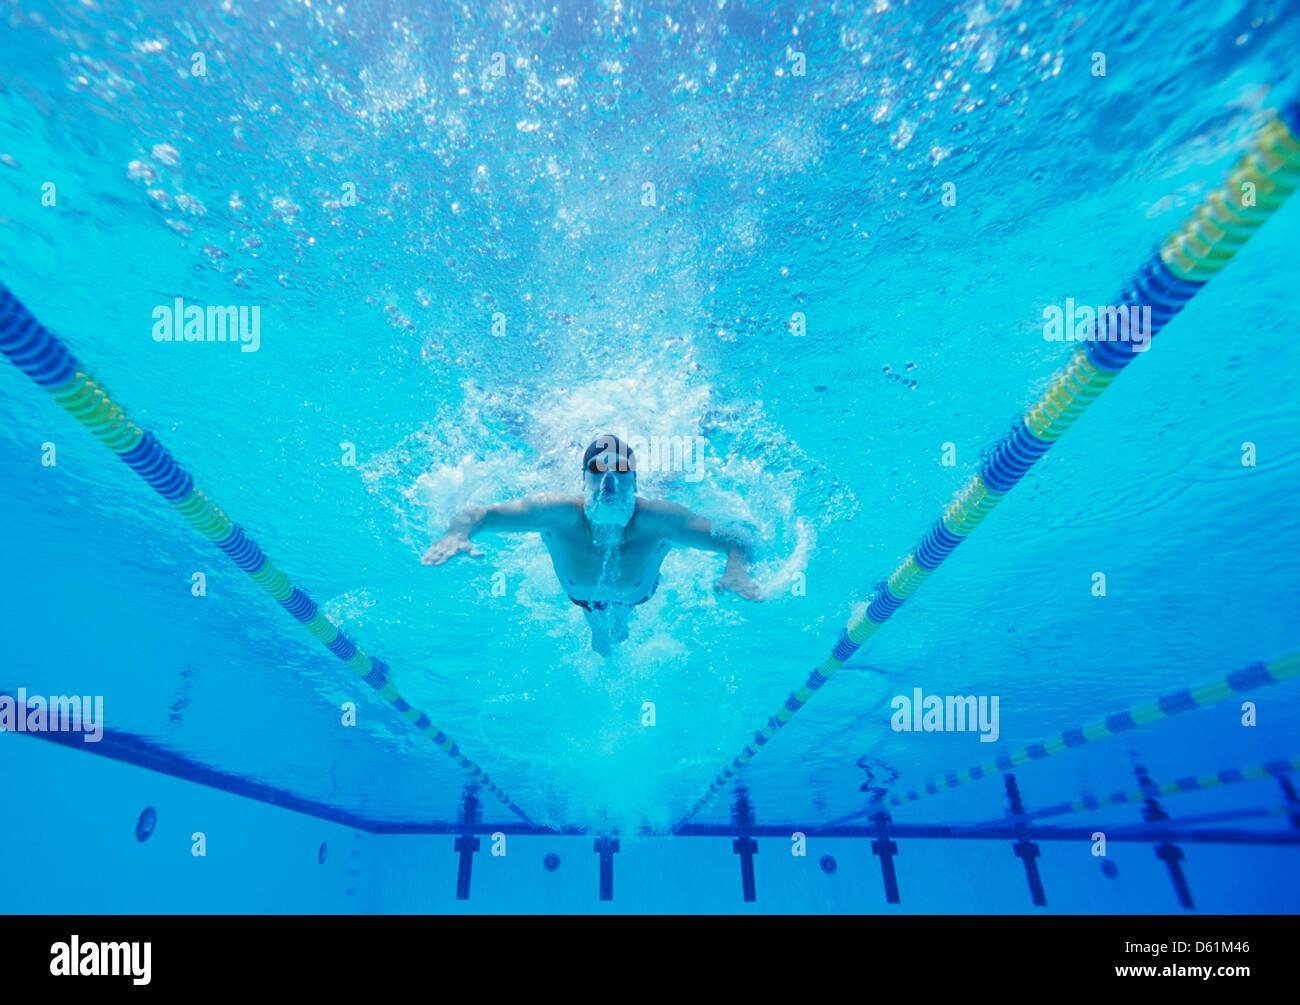 Underwater shot of male swimmer swimming in pool Stock Photo